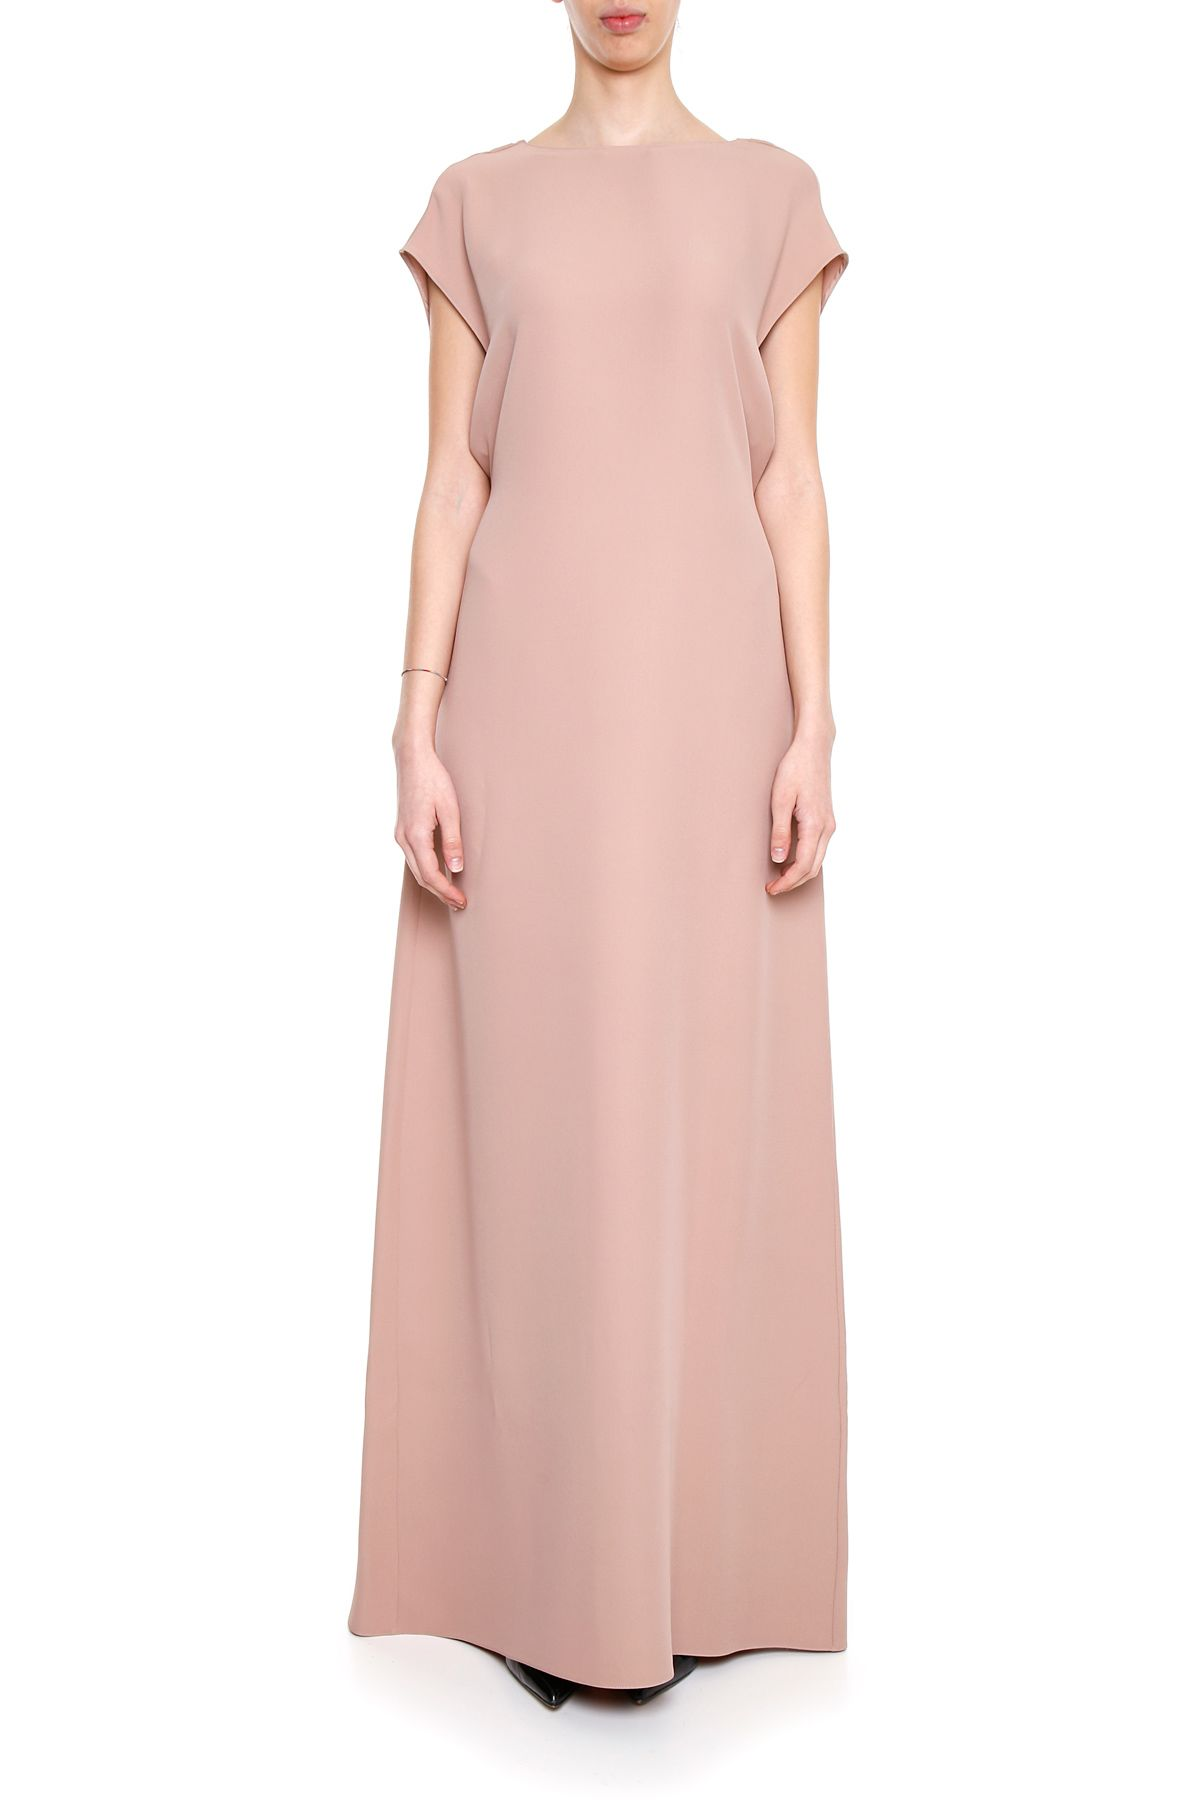 Valentino Cady Couture Long Dress